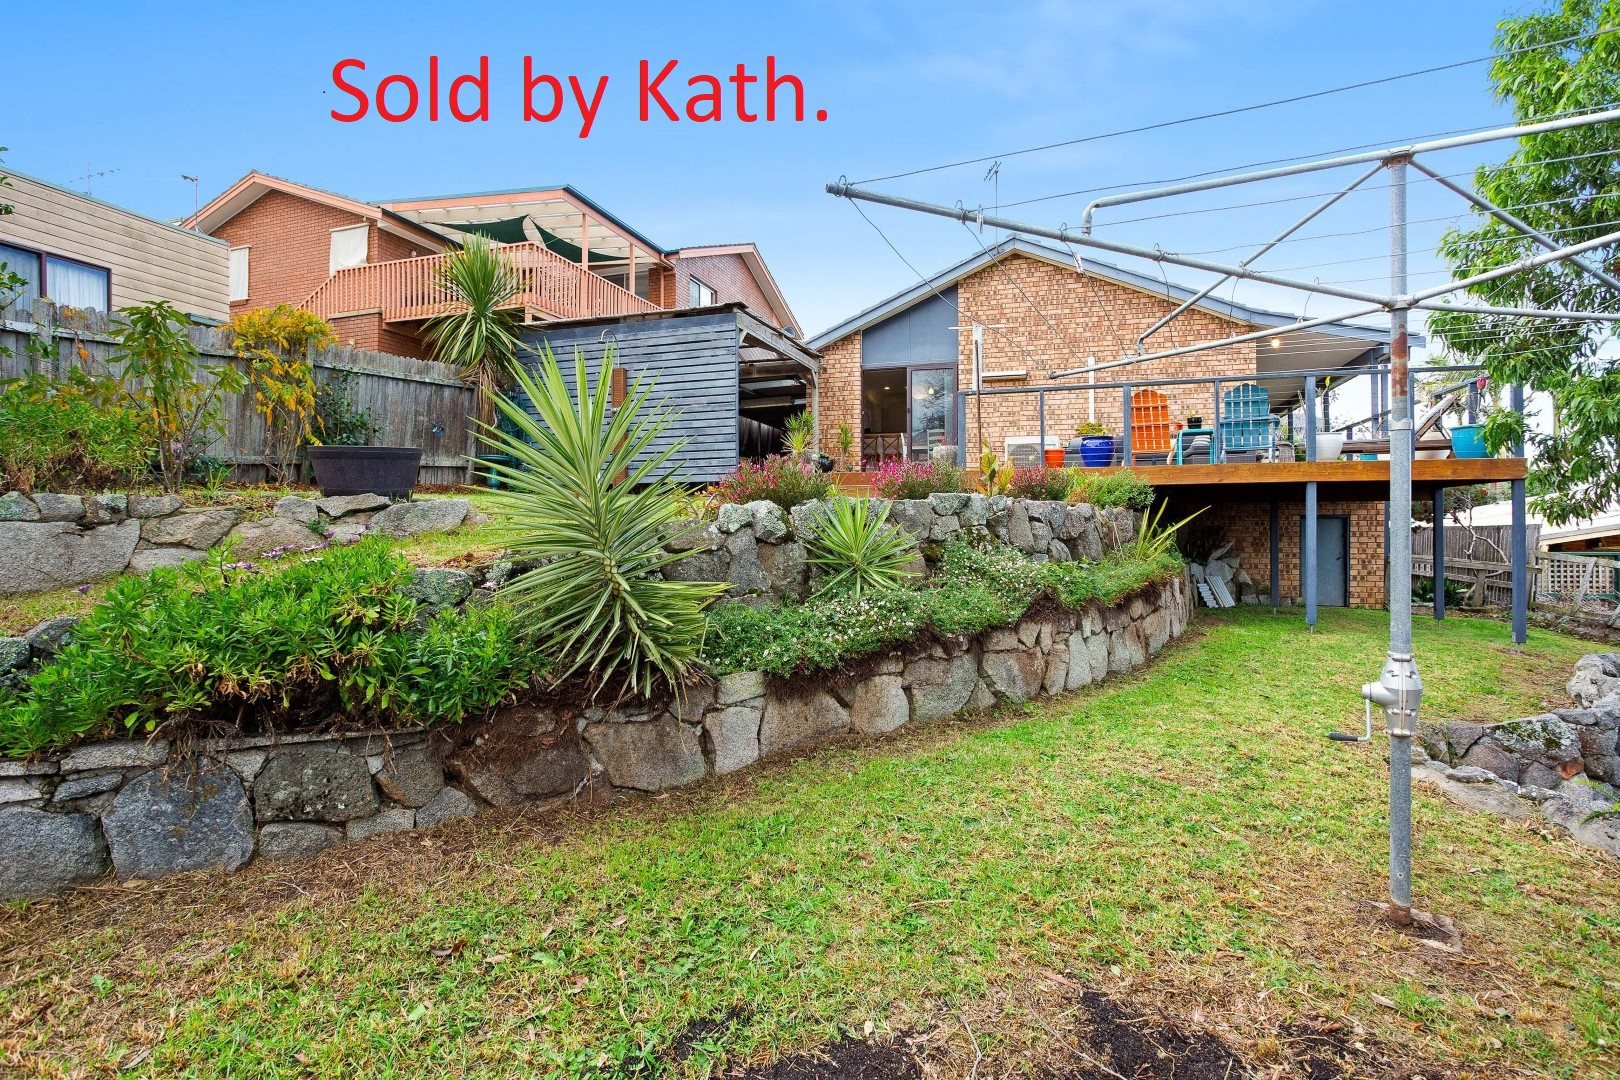 Thank you Kath for selling my home in record time & finding me a new home